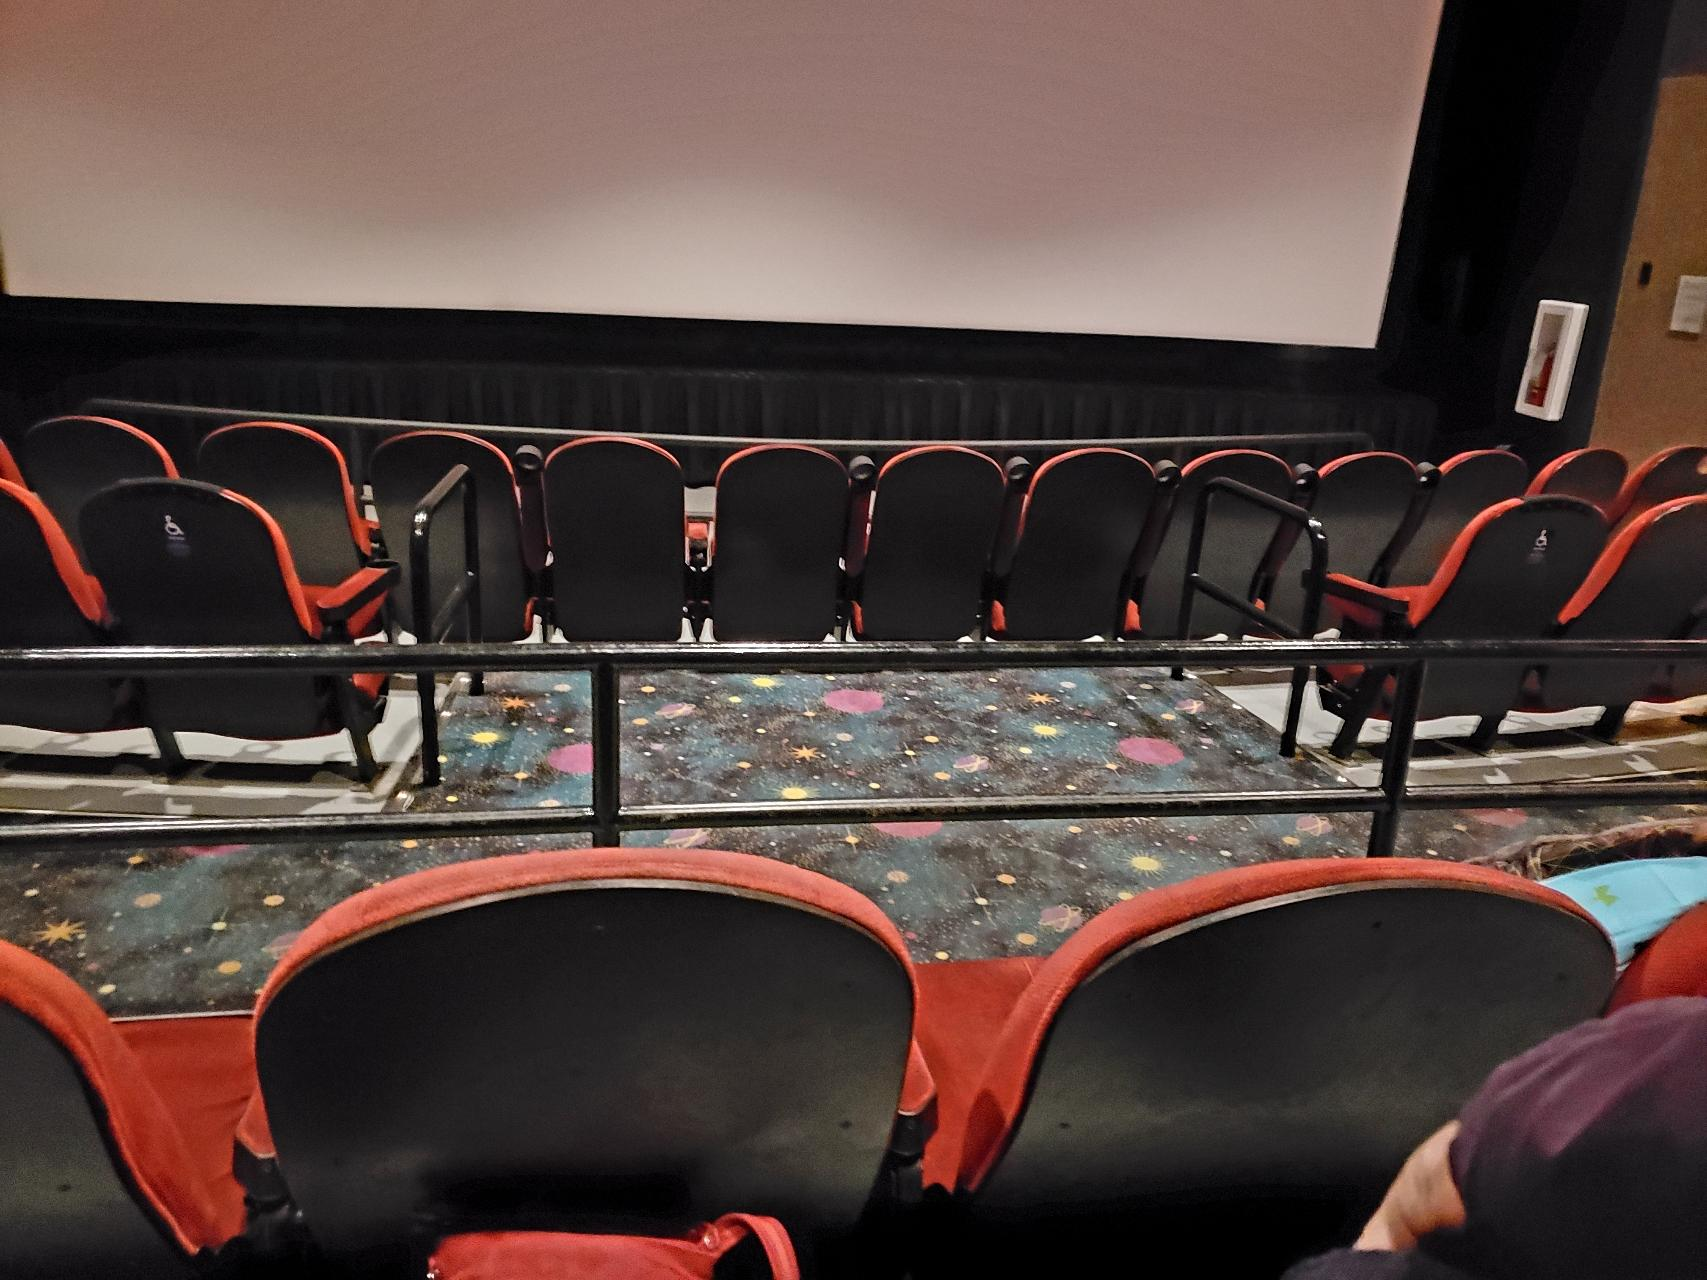 "Shot taken from cinema seating of a section before it that is ostensibly reserved for ""accessible seating"": there is an area of four seats' width barred off at the sides from the other seats in the middle of the row. This section is in the second row of the cinema, with a transverse aisle behind it."